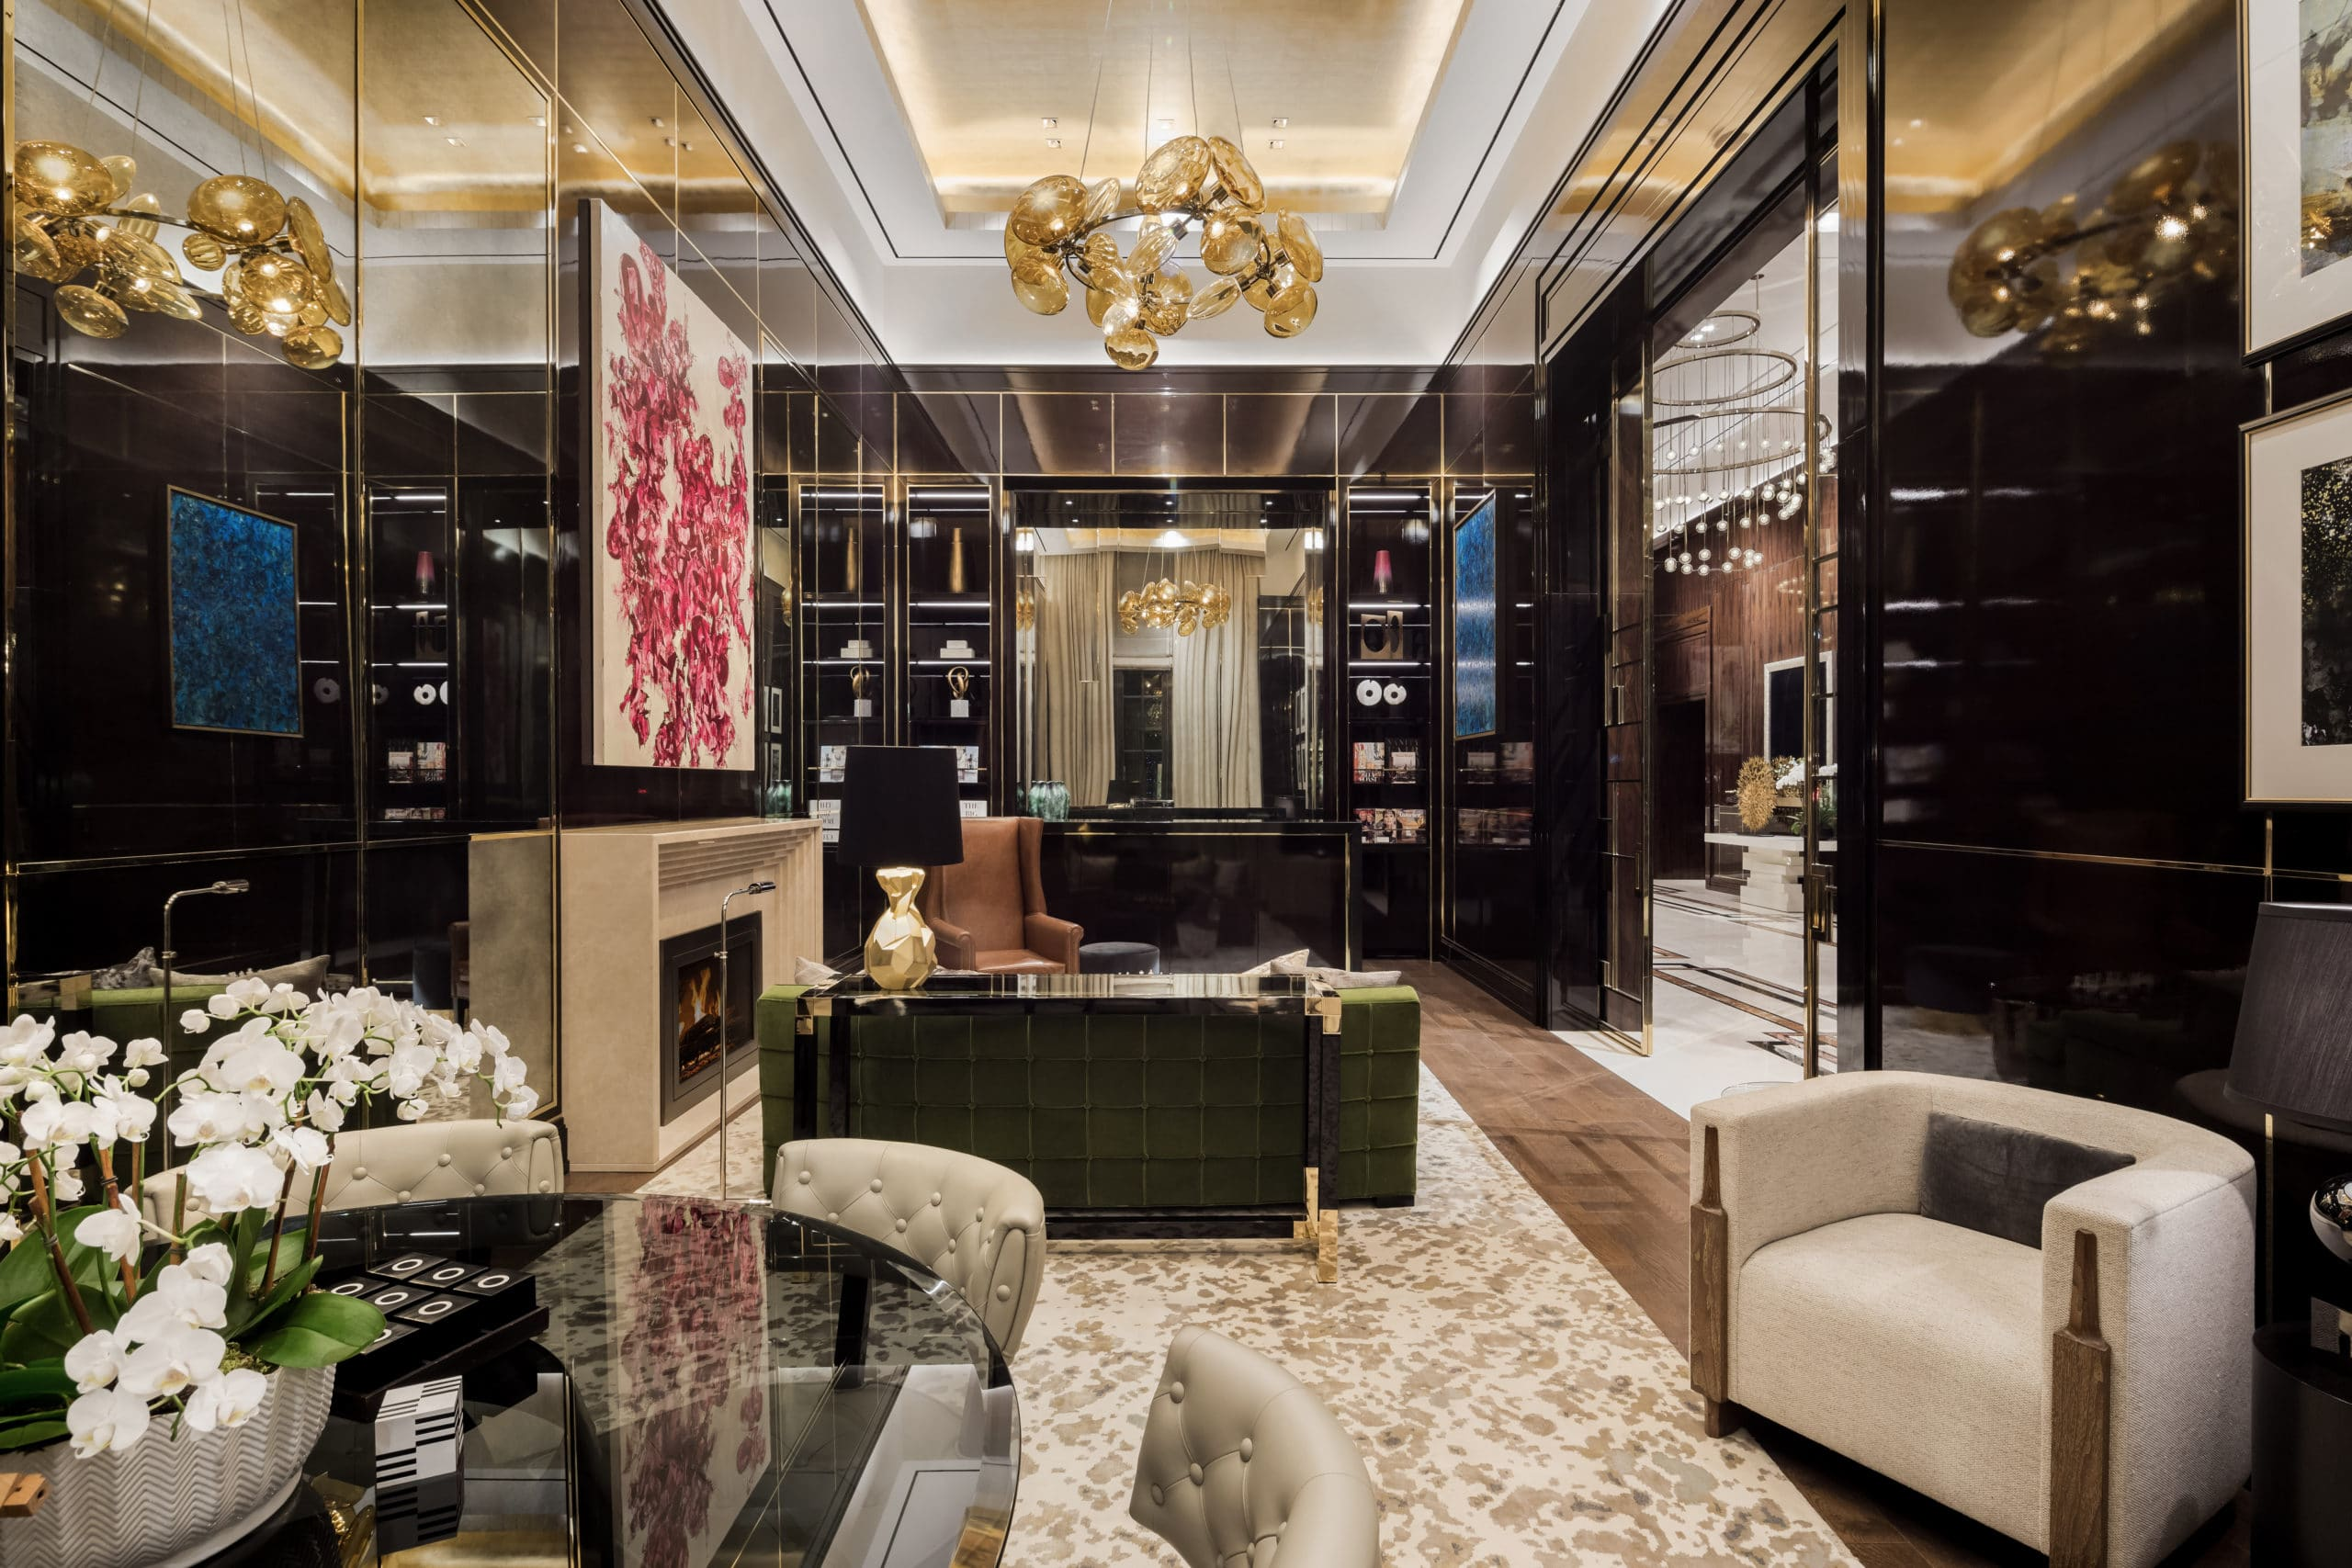 The Kent luxury condominiums in New York City. A room with black walls, built in shelves, and seating by a fireplace.